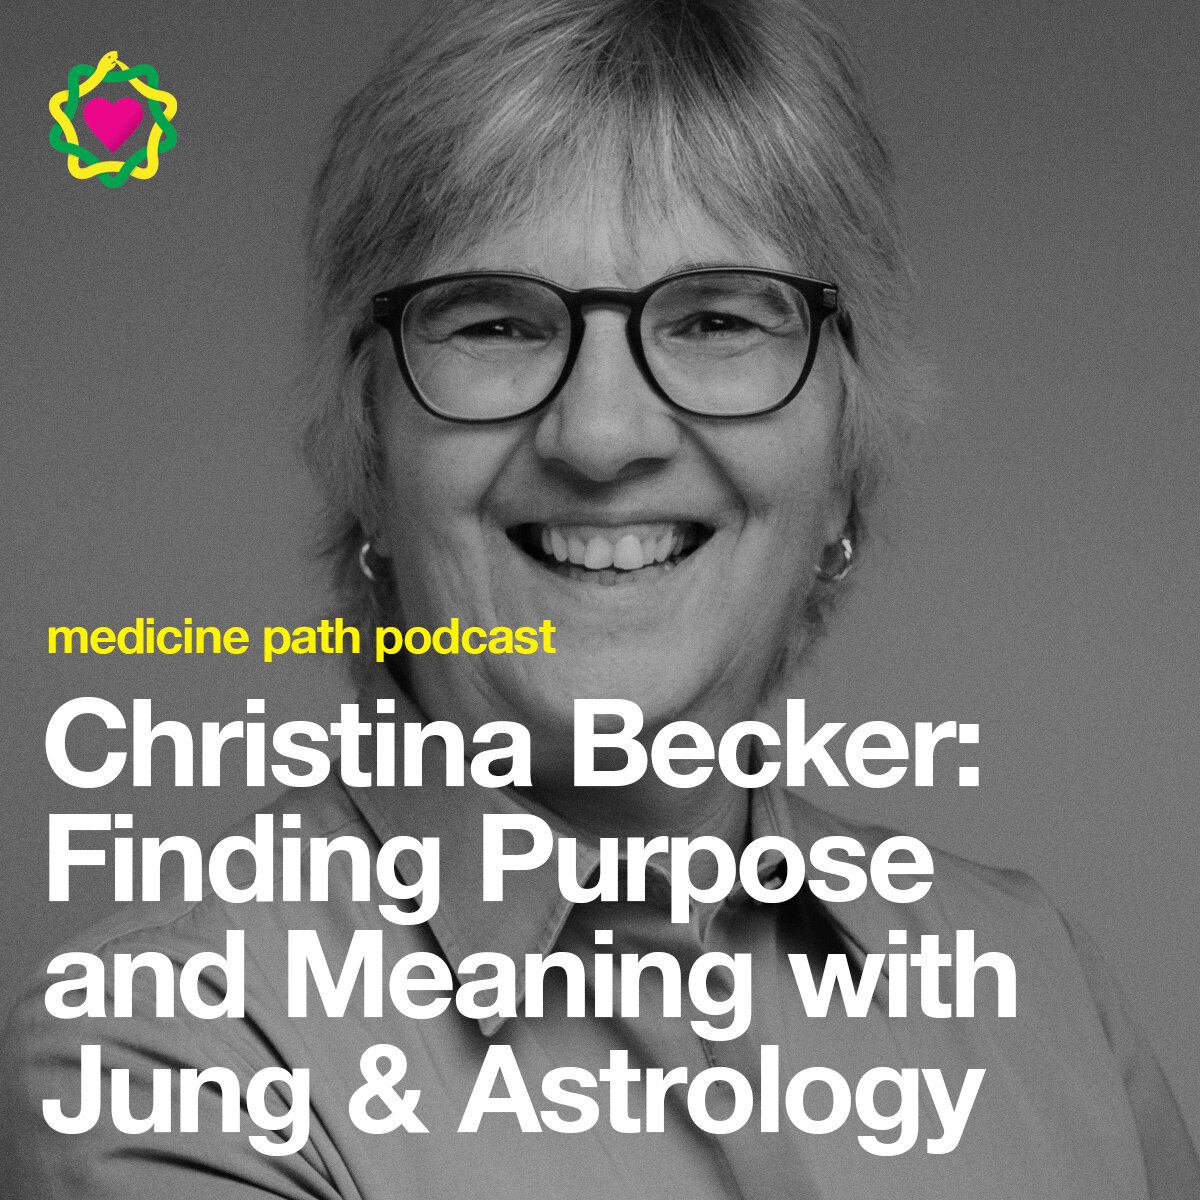 MPP68 Finding Purpose and Meaning with Jung & Astrology: Christina Becker